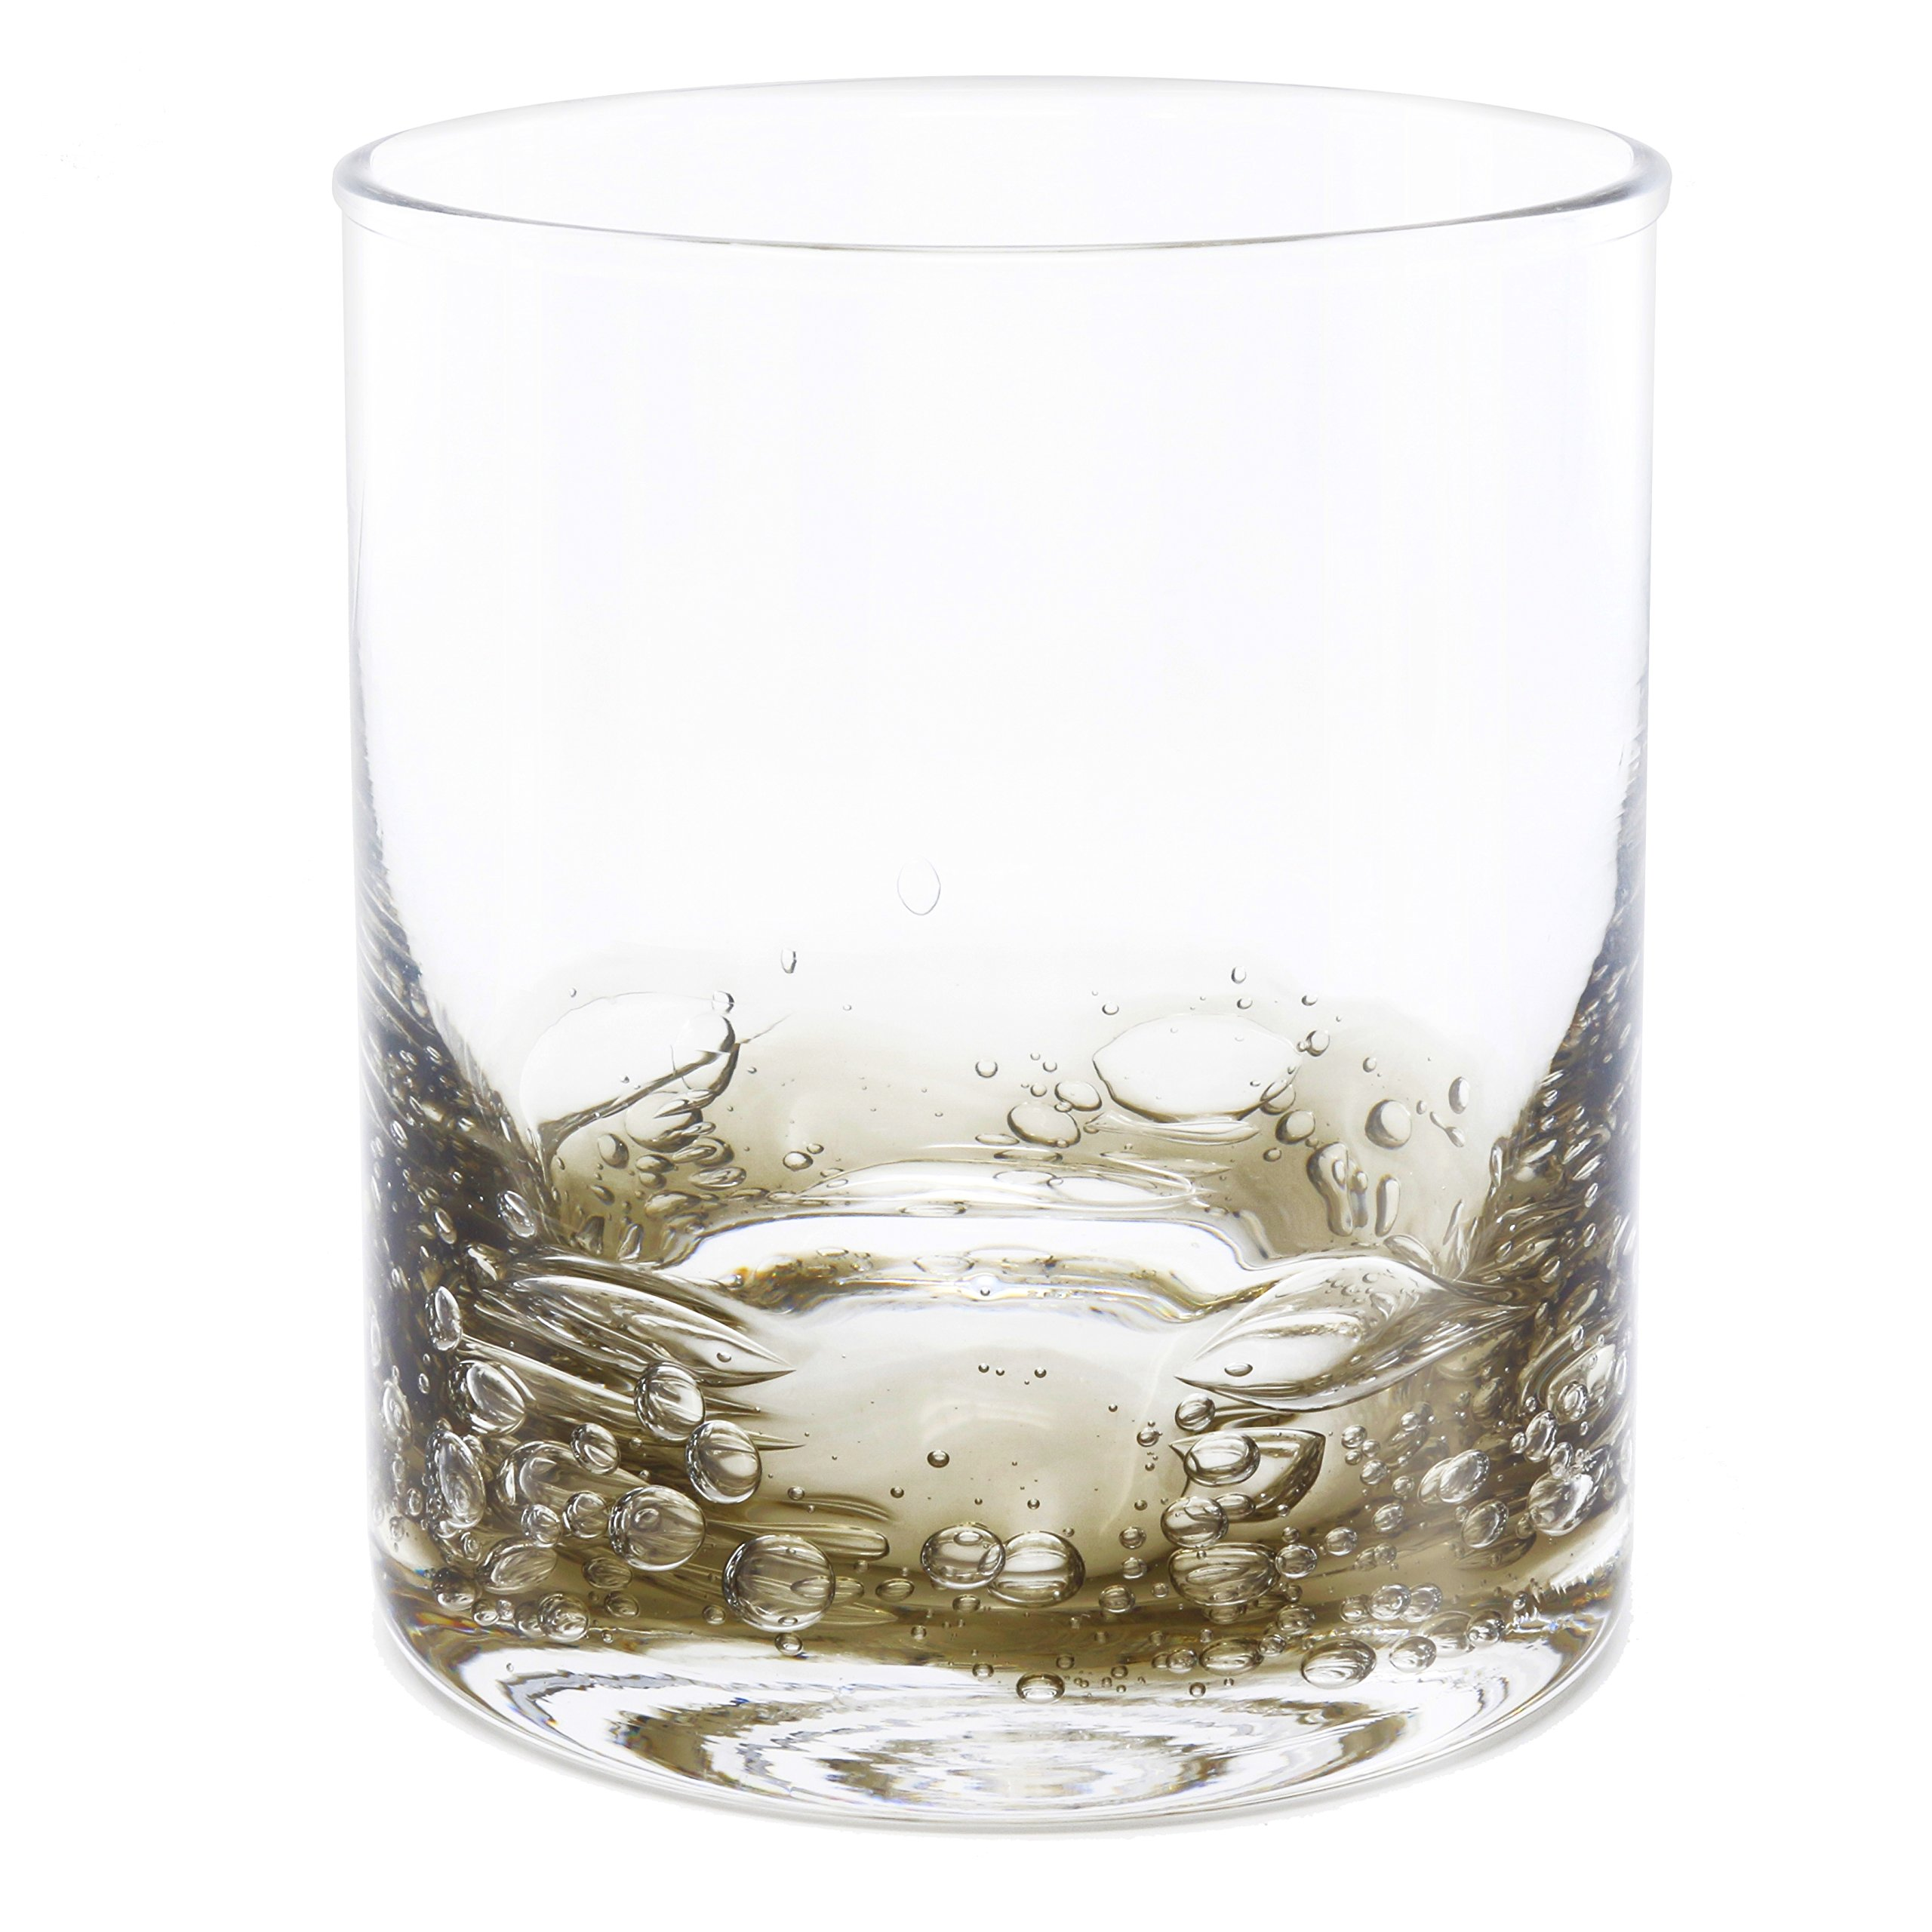 NÄU Zone Jovian Collection Cocktail Glasses Set of 4: Beautiful Hand-Blown 12-oz Rocks Glasses - Perfect for Whiskey, Bourbon, Scotch, or Any Mixed Drink - [CHARCOAL]